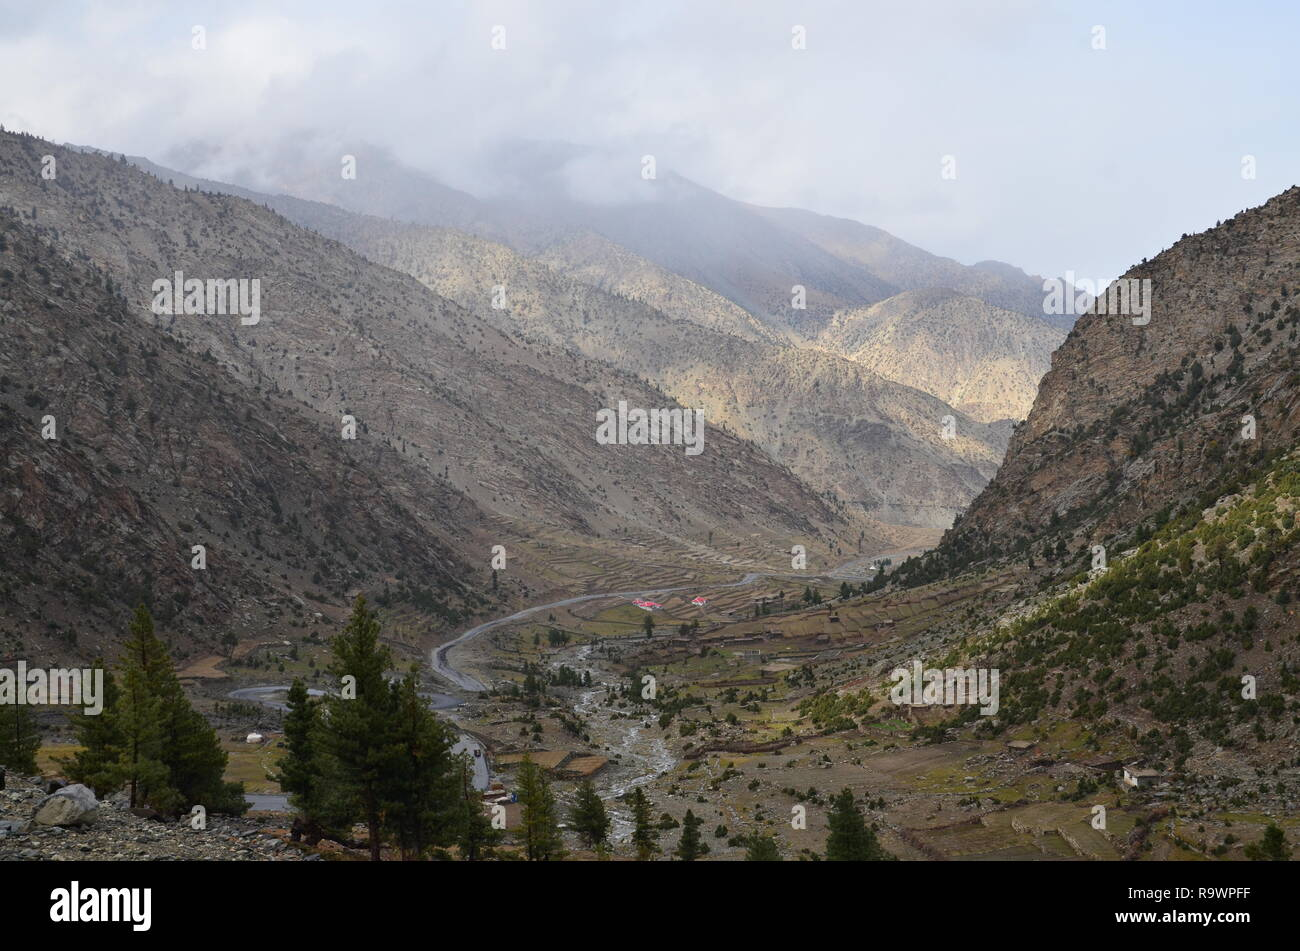 A view from Babusar top KPK looking down the valley in North Pakistan. - Stock Image